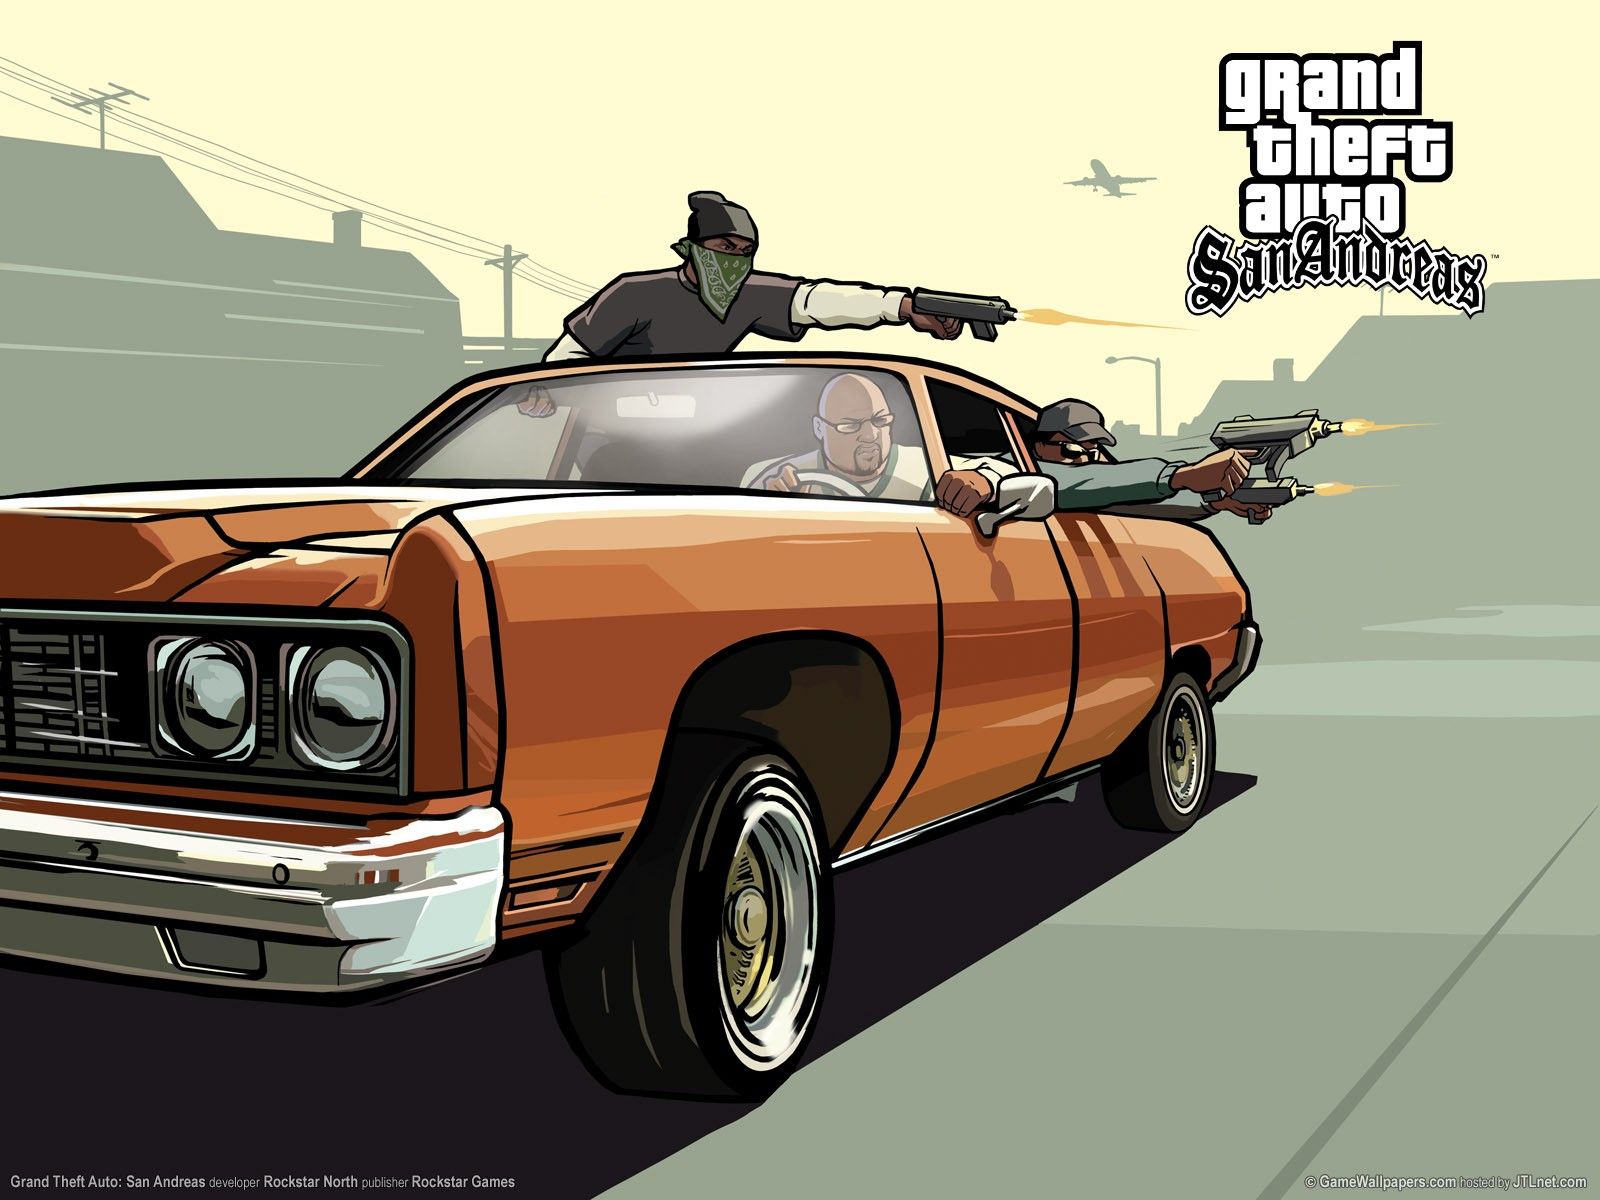 Grand-theft-auto-san-andreas-wallpapers-876[1]